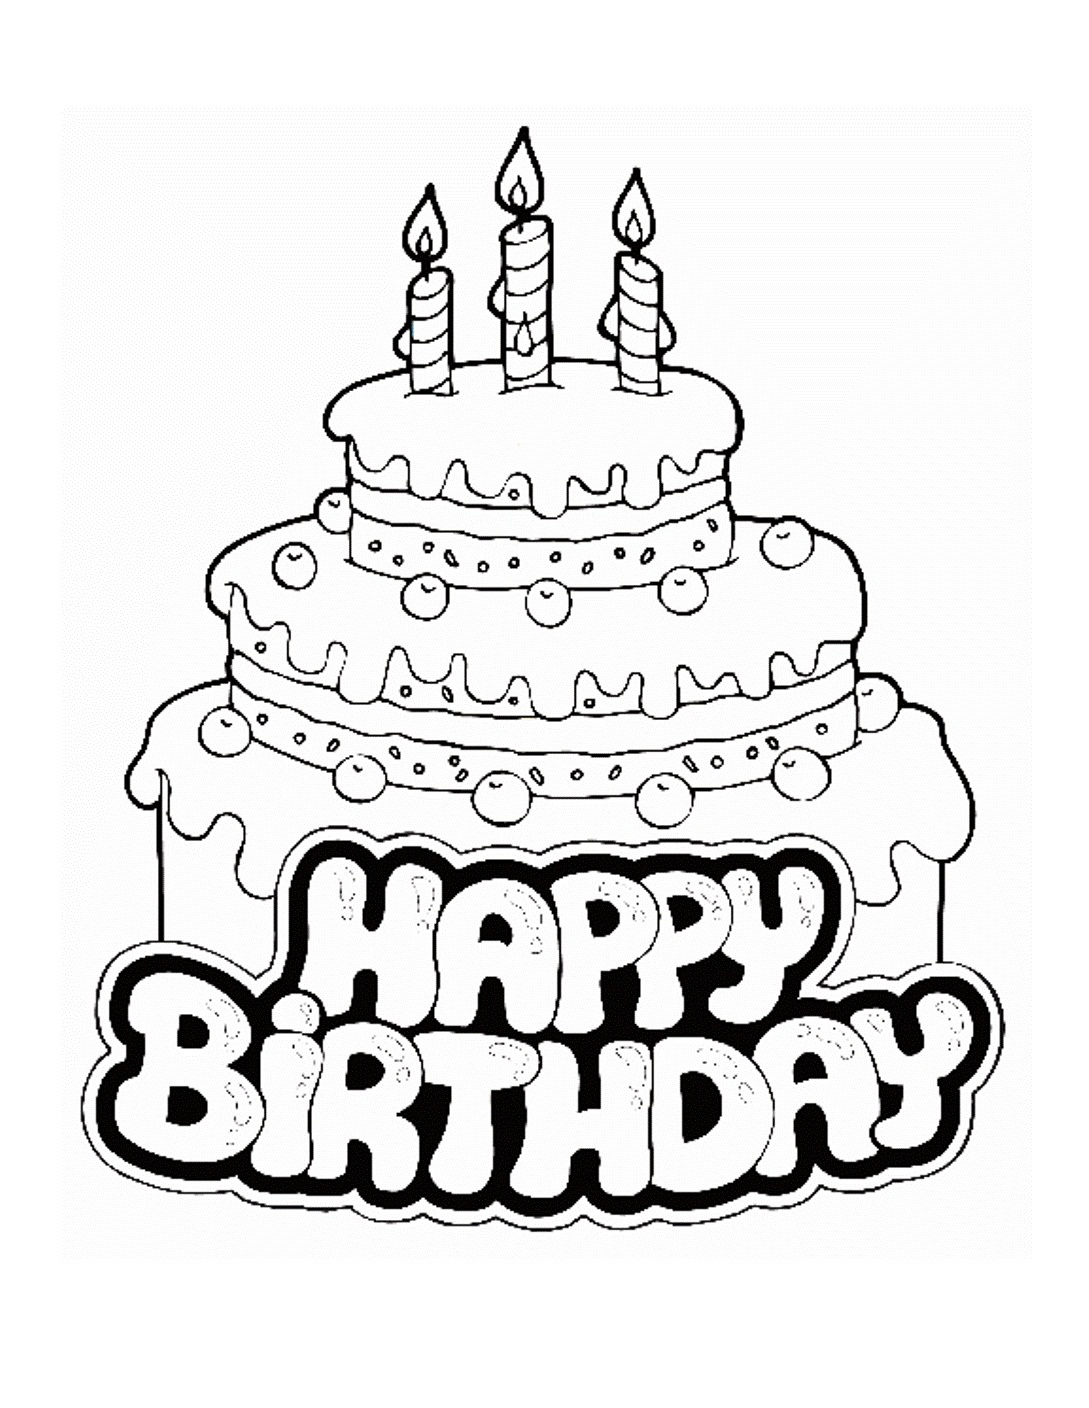 birthday cake coloring pages preschool ; birthday-cake-coloring-pages-printable-book-of-cakecoloring